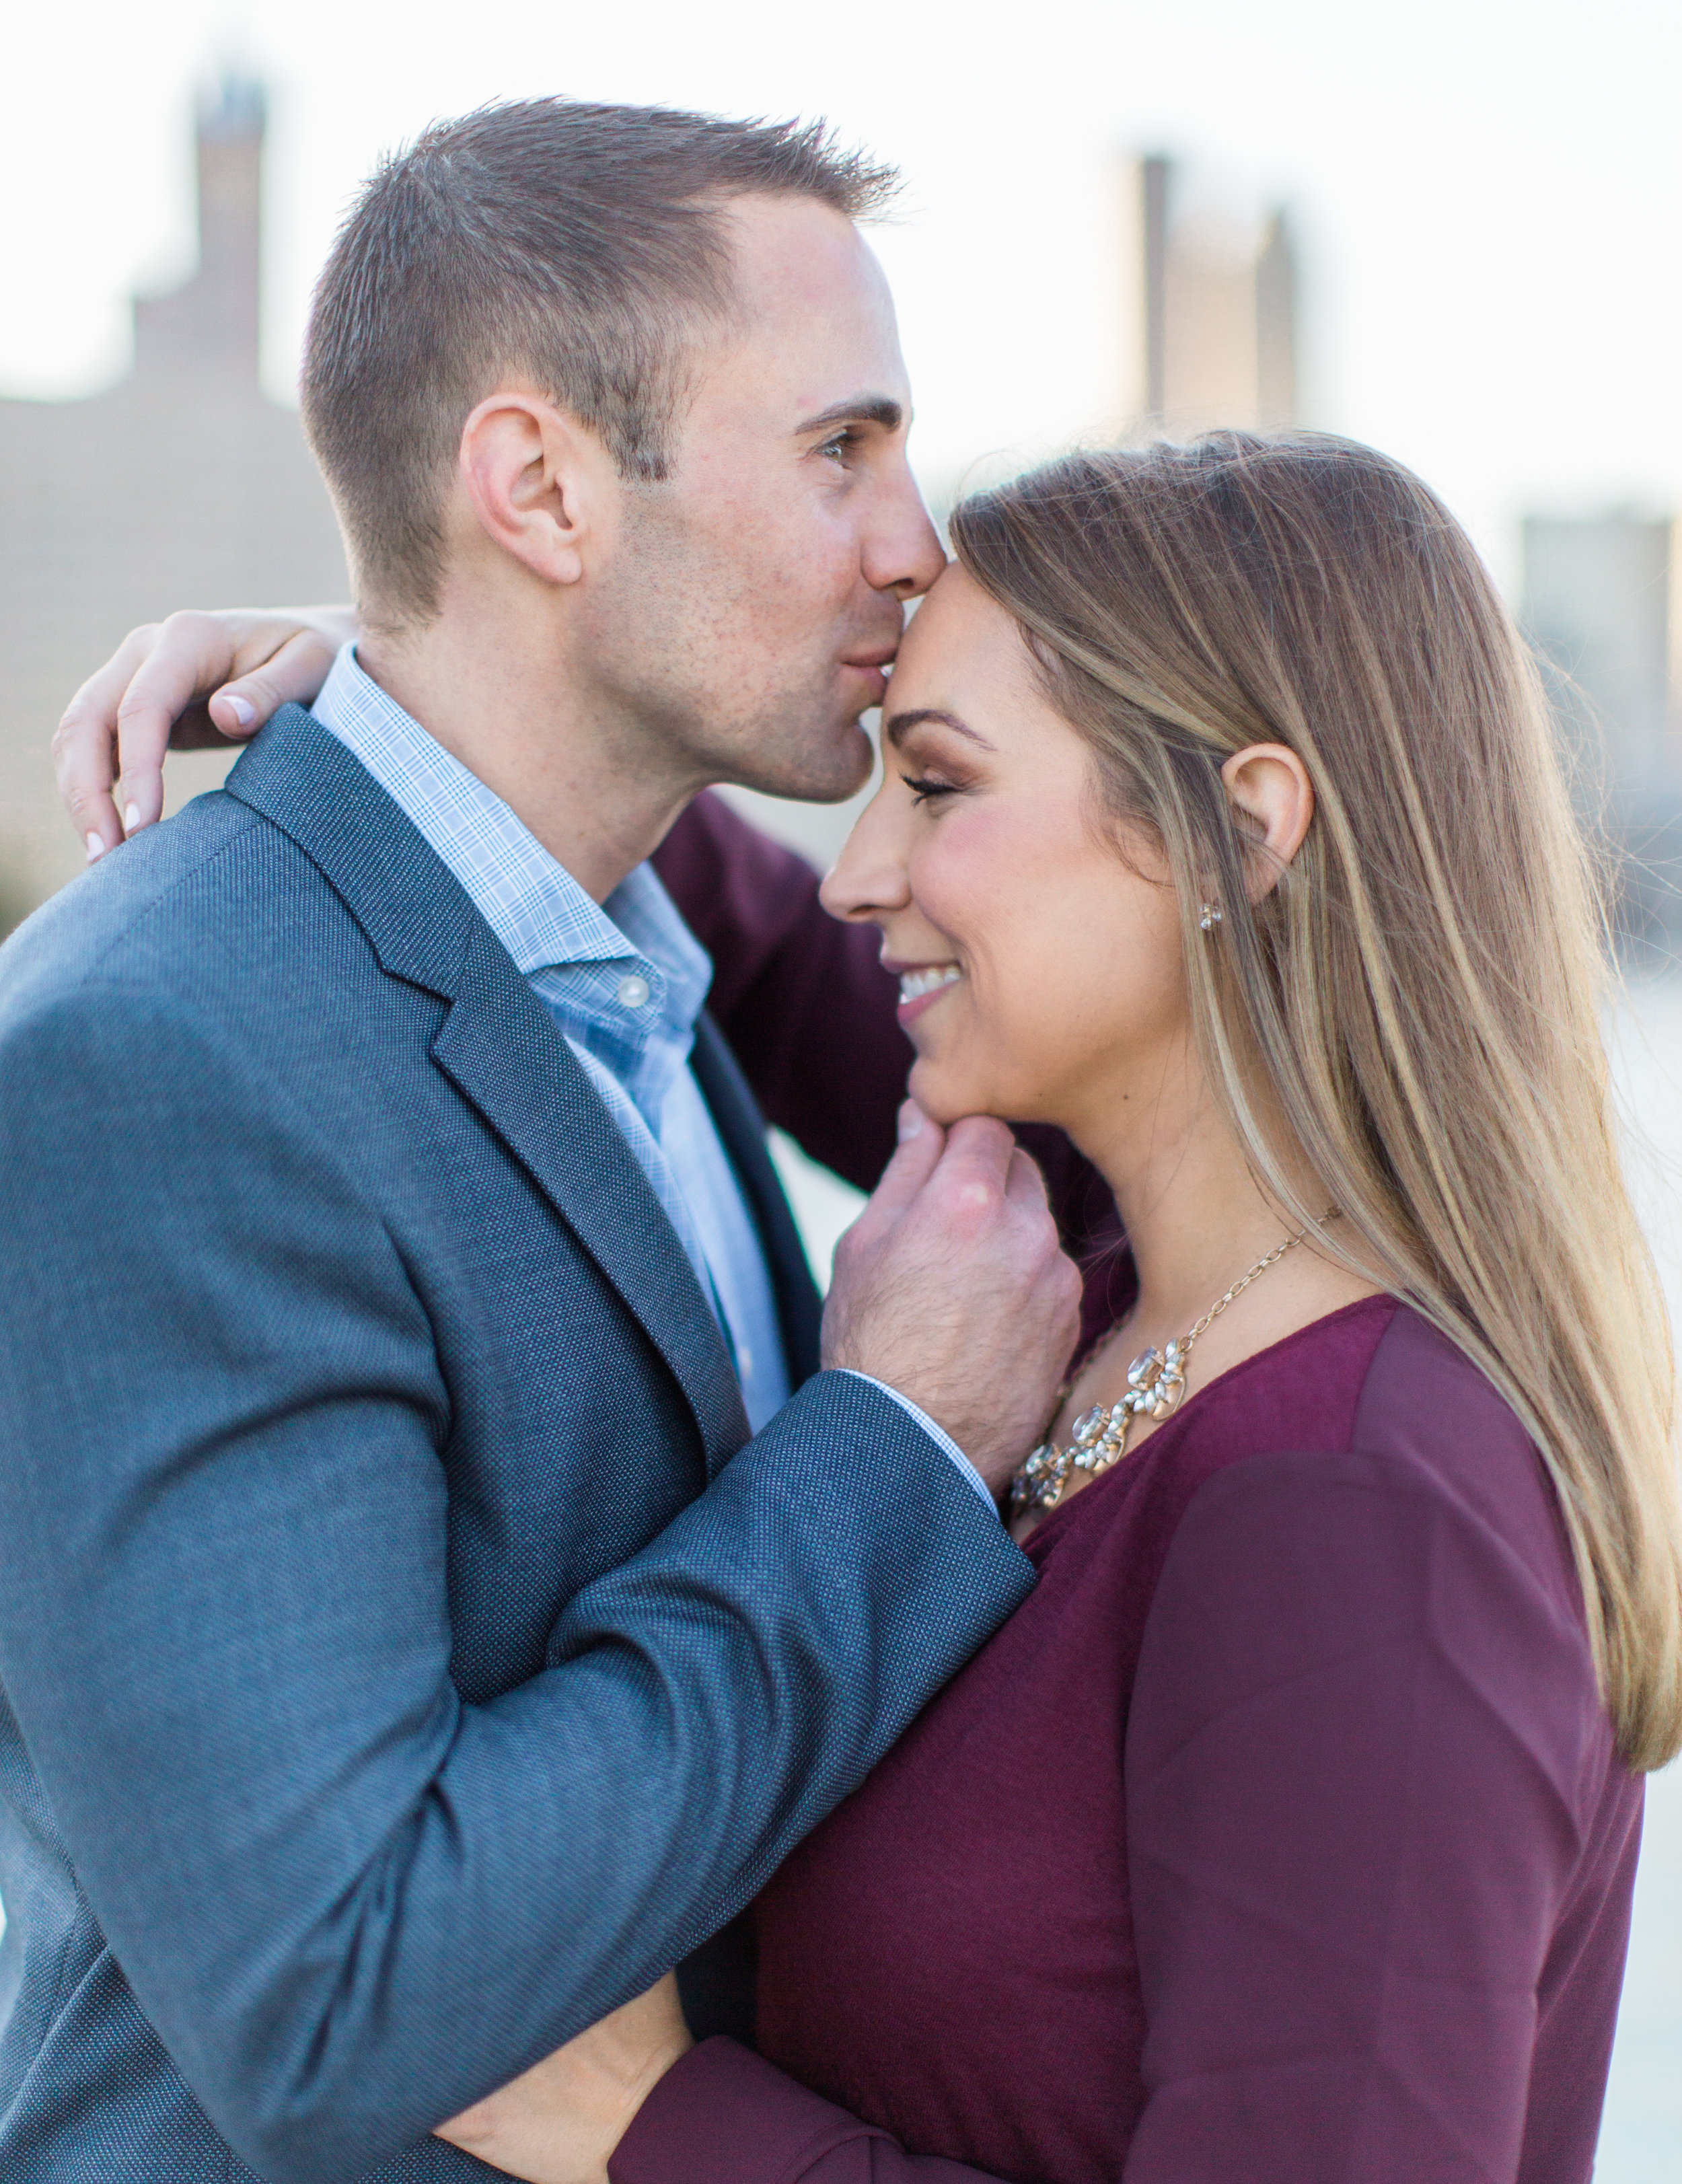 Bonphotage Downtown Chicago Engagement Photography